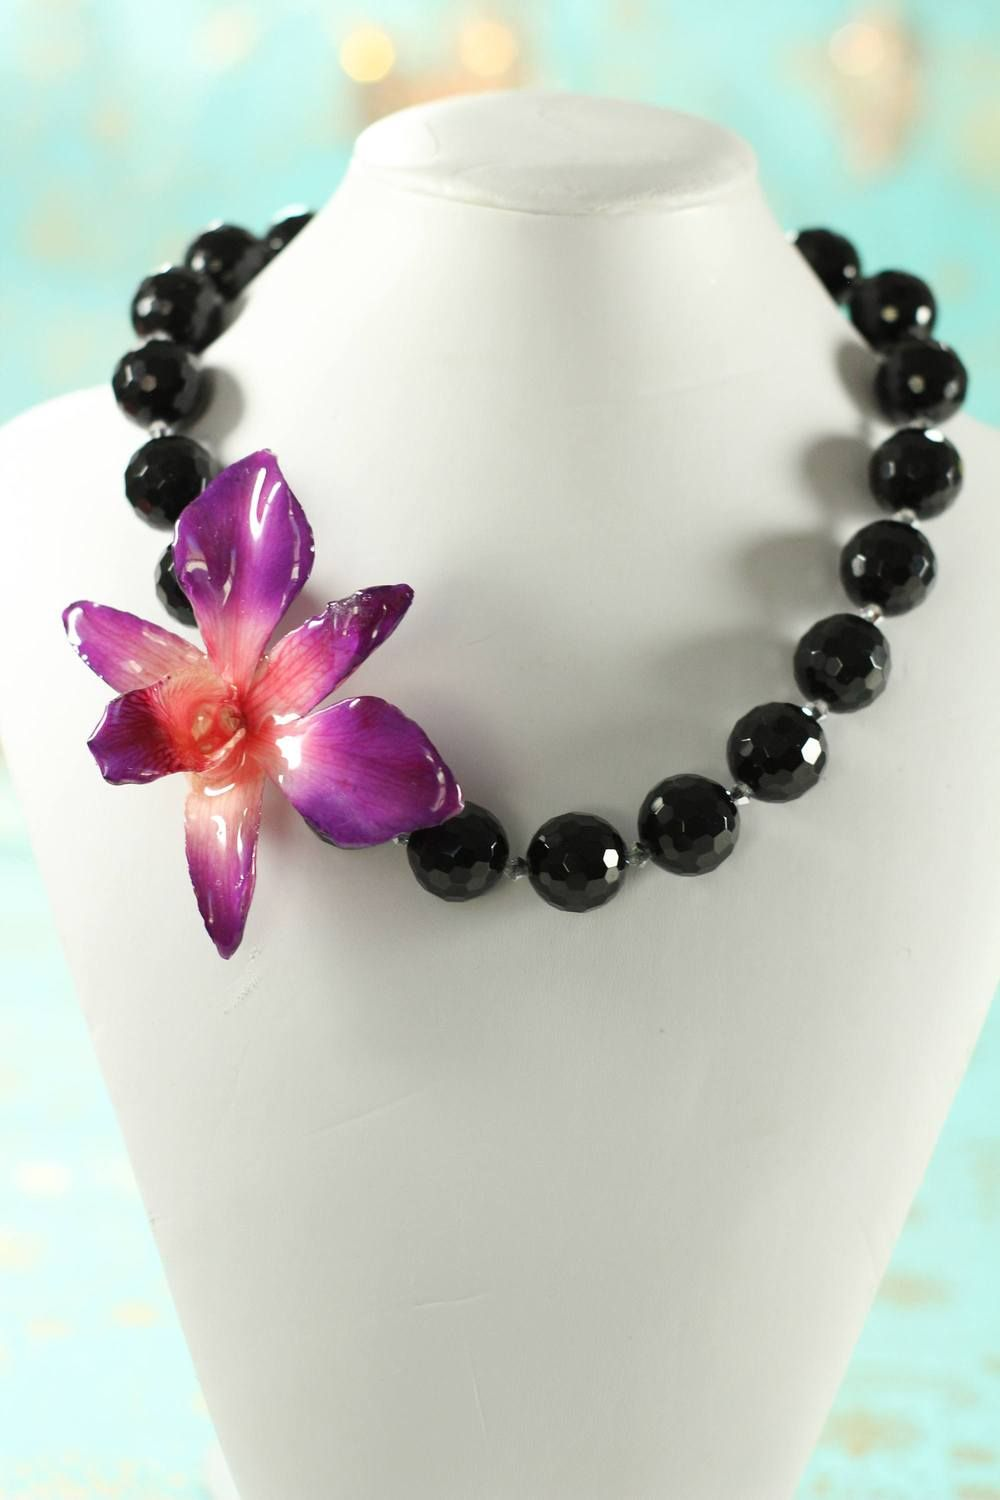 Orchid Flower Jewelry Real Orchid Necklace Handmade Gifts Flower Jewellery Orchid Necklace Flower Statement Necklace